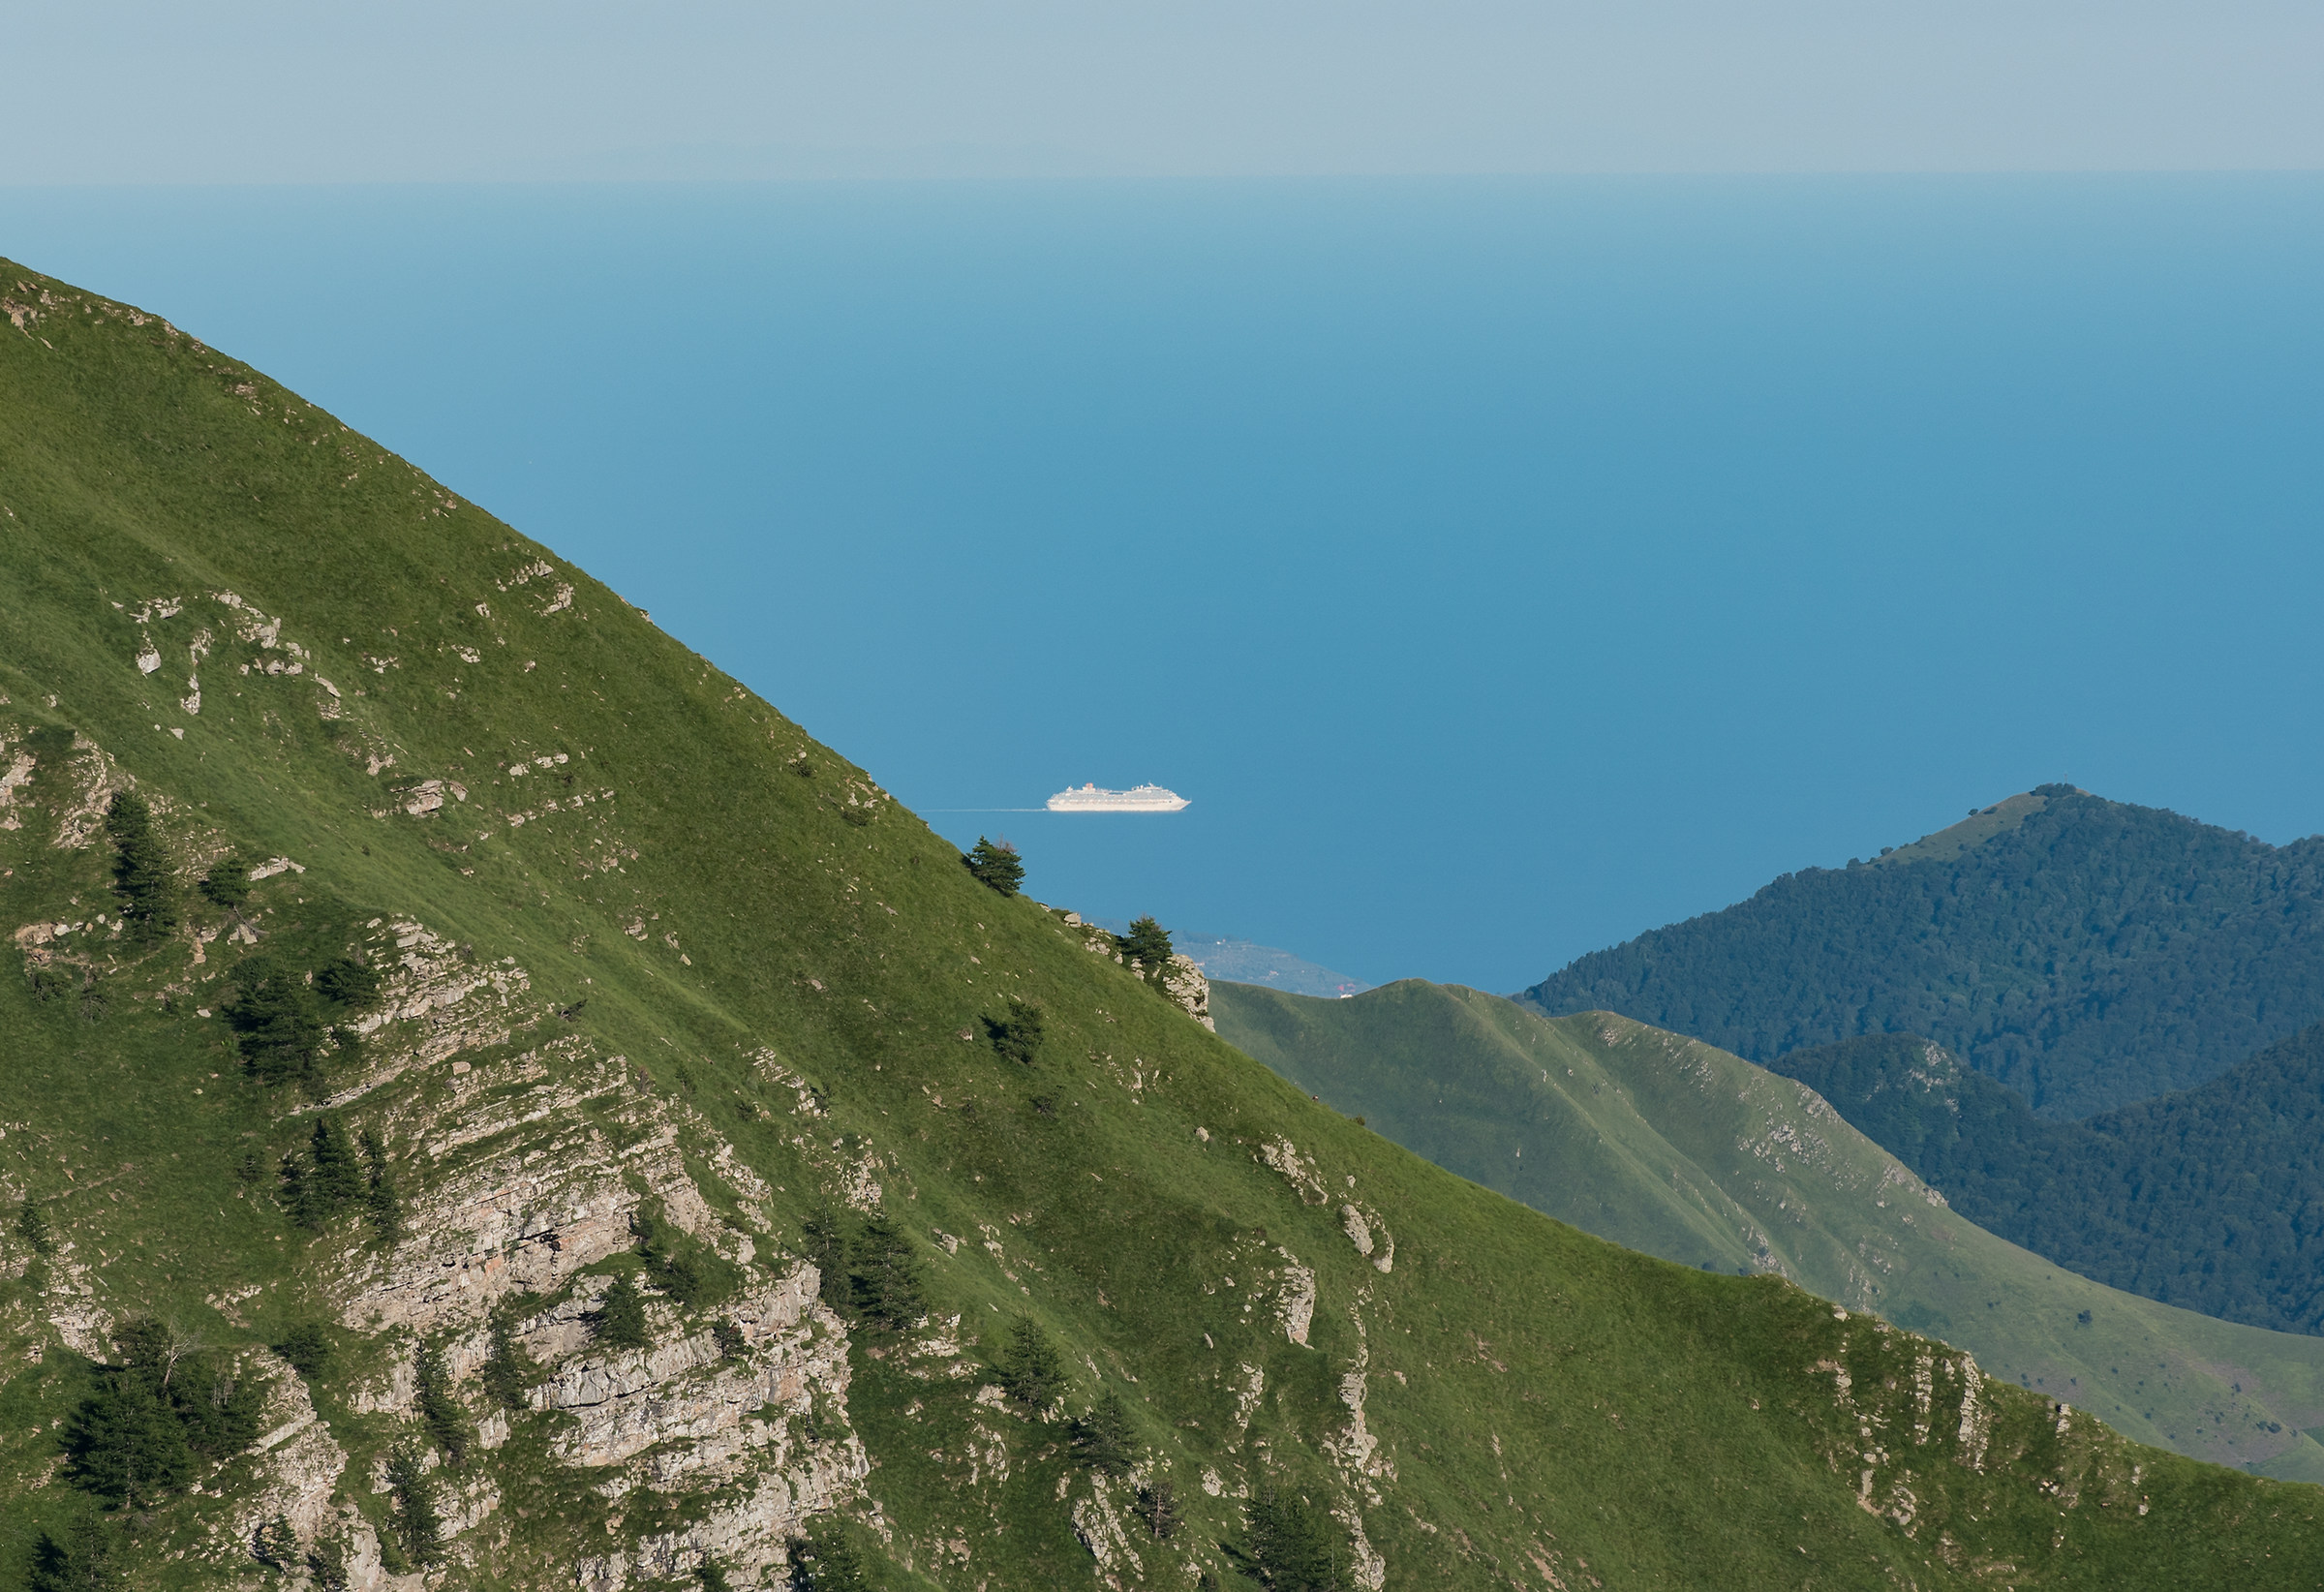 A ship in the mountains...